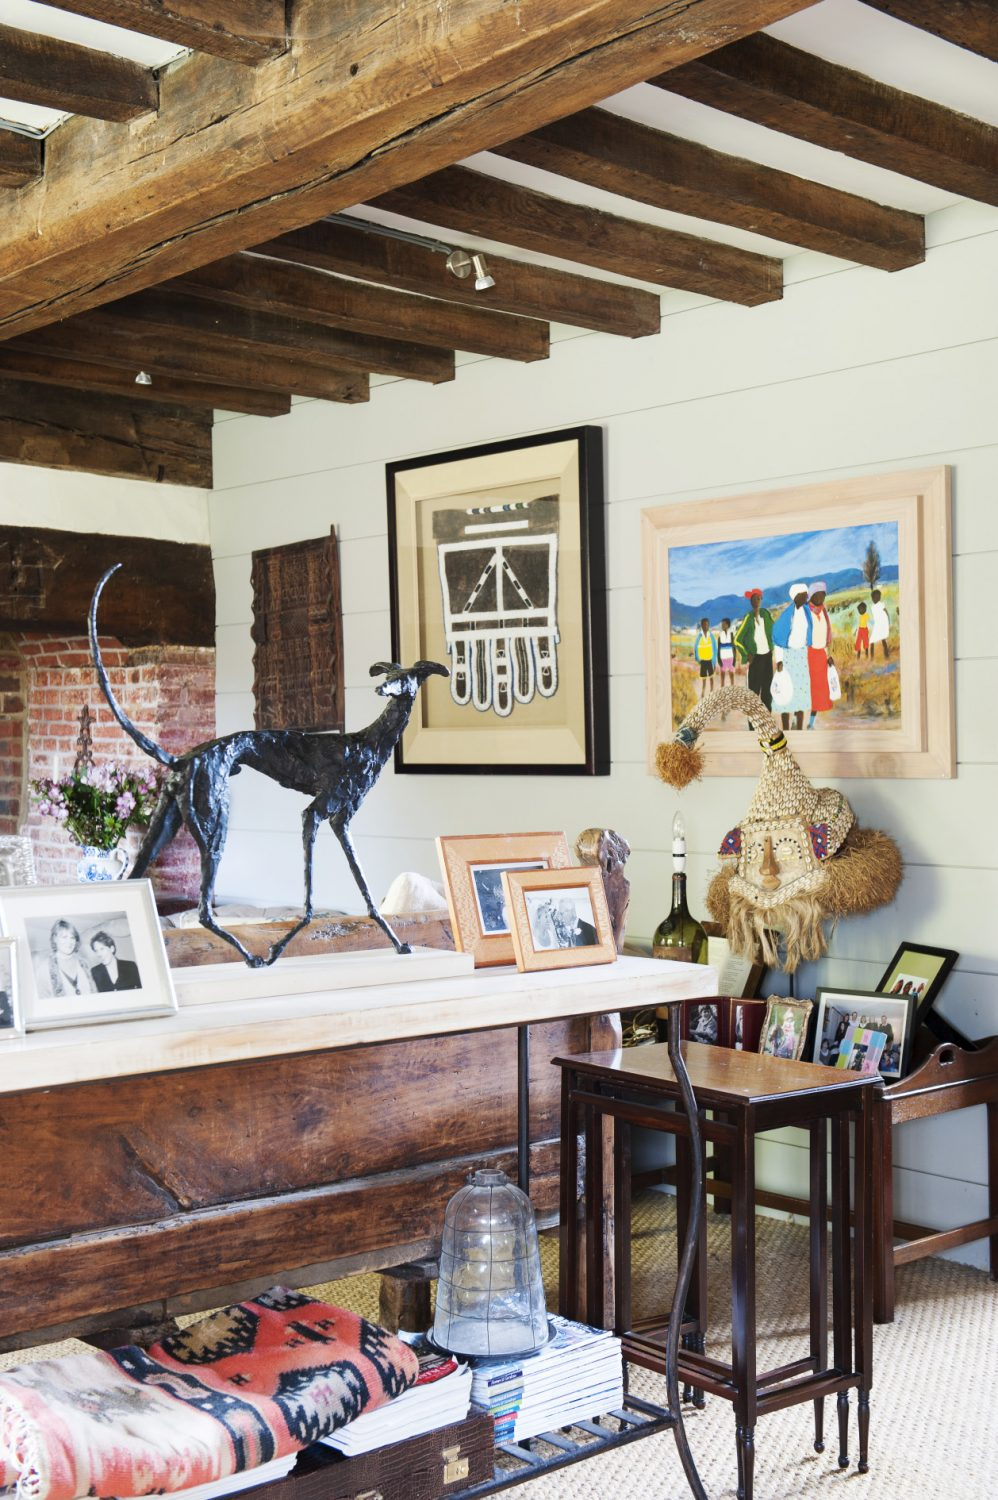 Reminders of Africa resound throughout the home